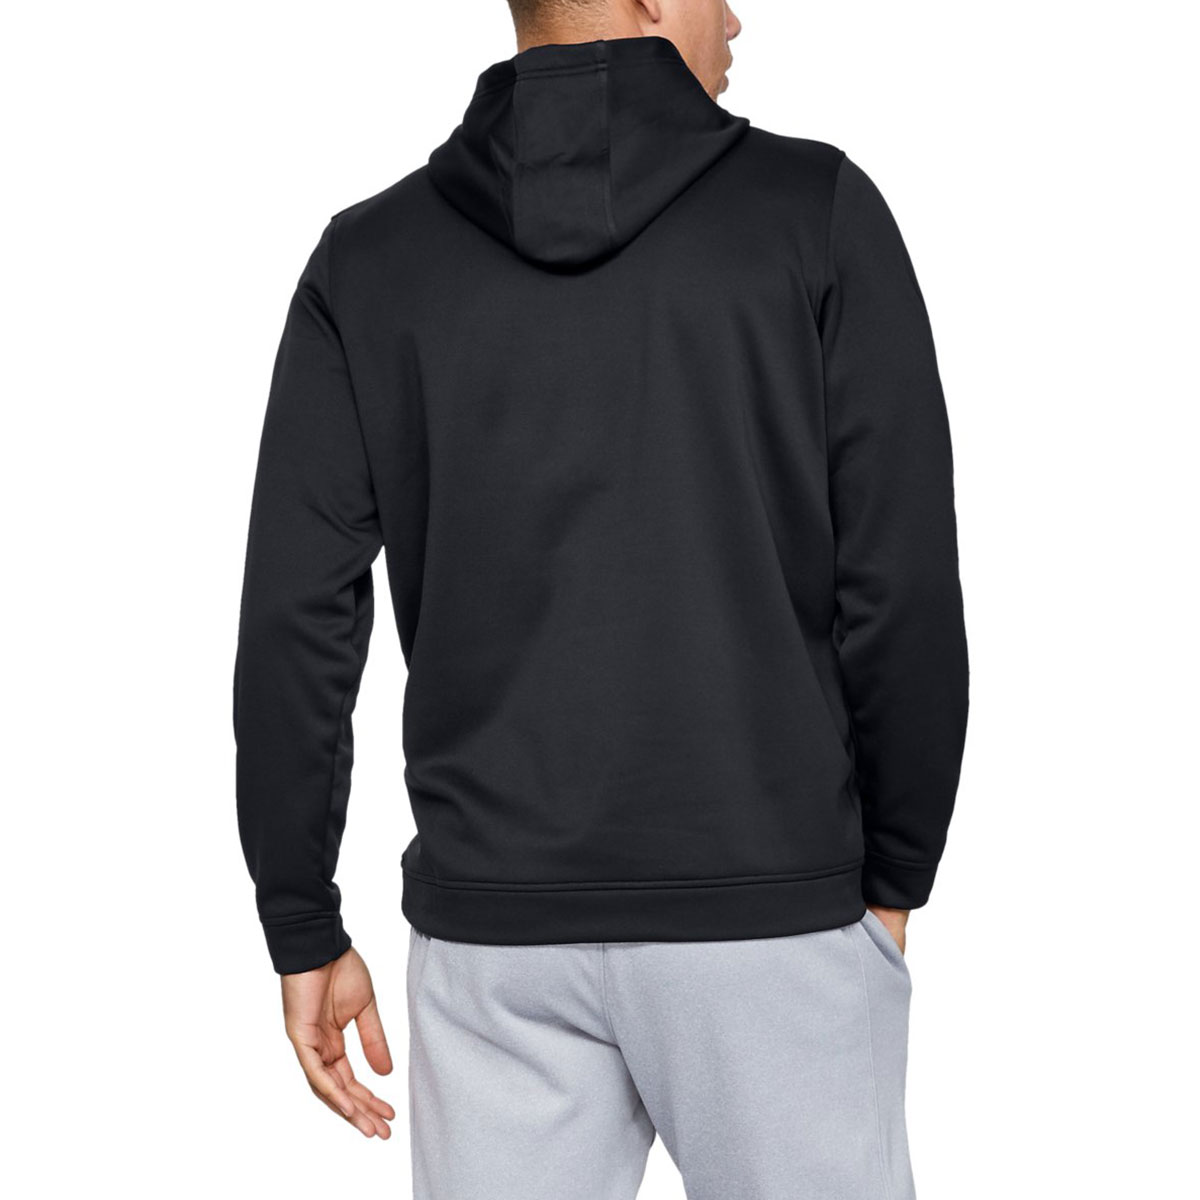 Under-Armour-Mens-Performance-Fleece-Graphic-Hoodie-Hoody-45-OFF-RRP thumbnail 3